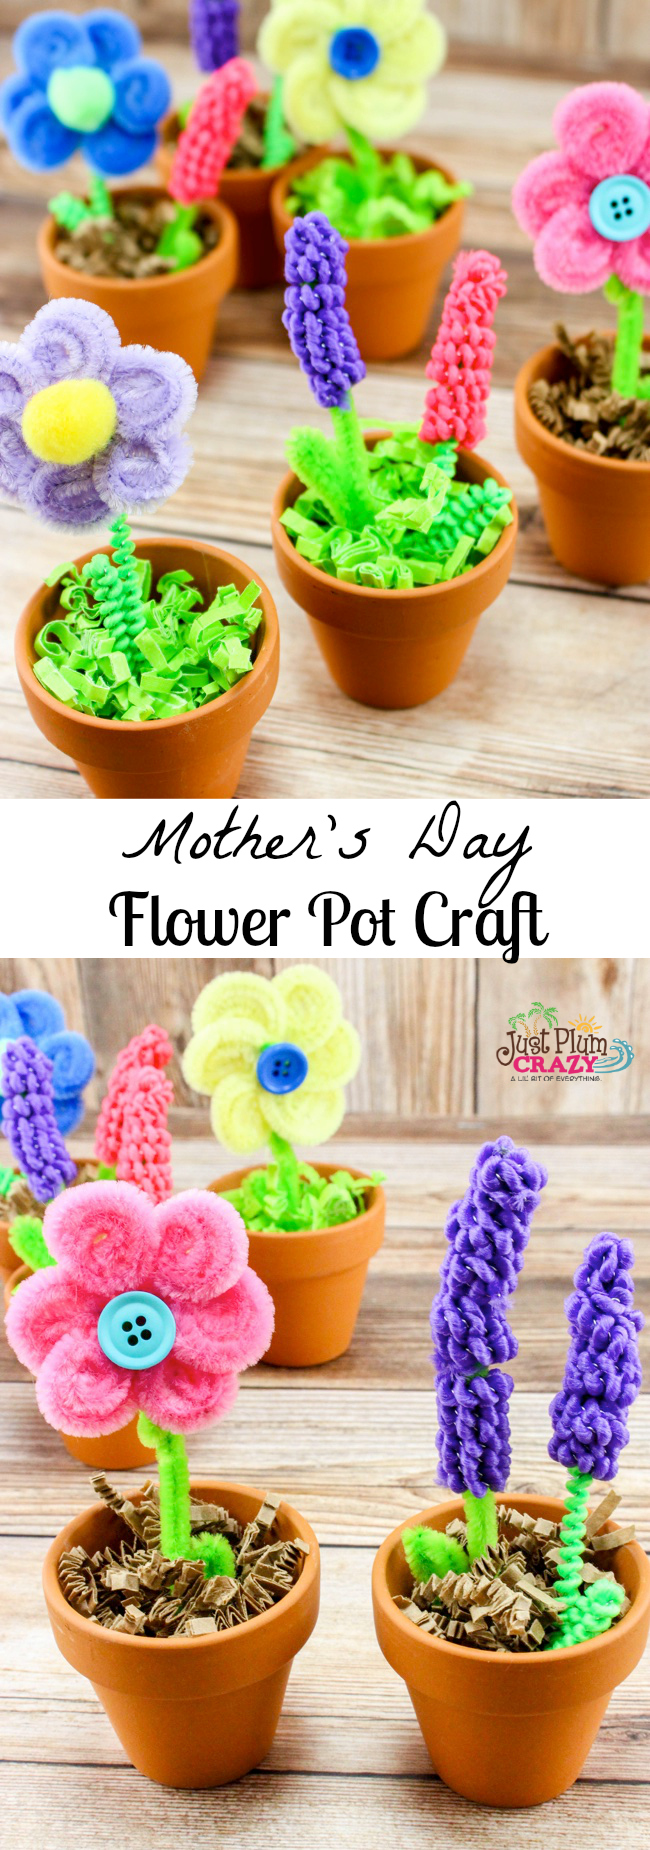 One of my fondest memories is a flower pot craft that I received for Mother's Day from my boys when they were little that I still have almost 30 yrs. later.